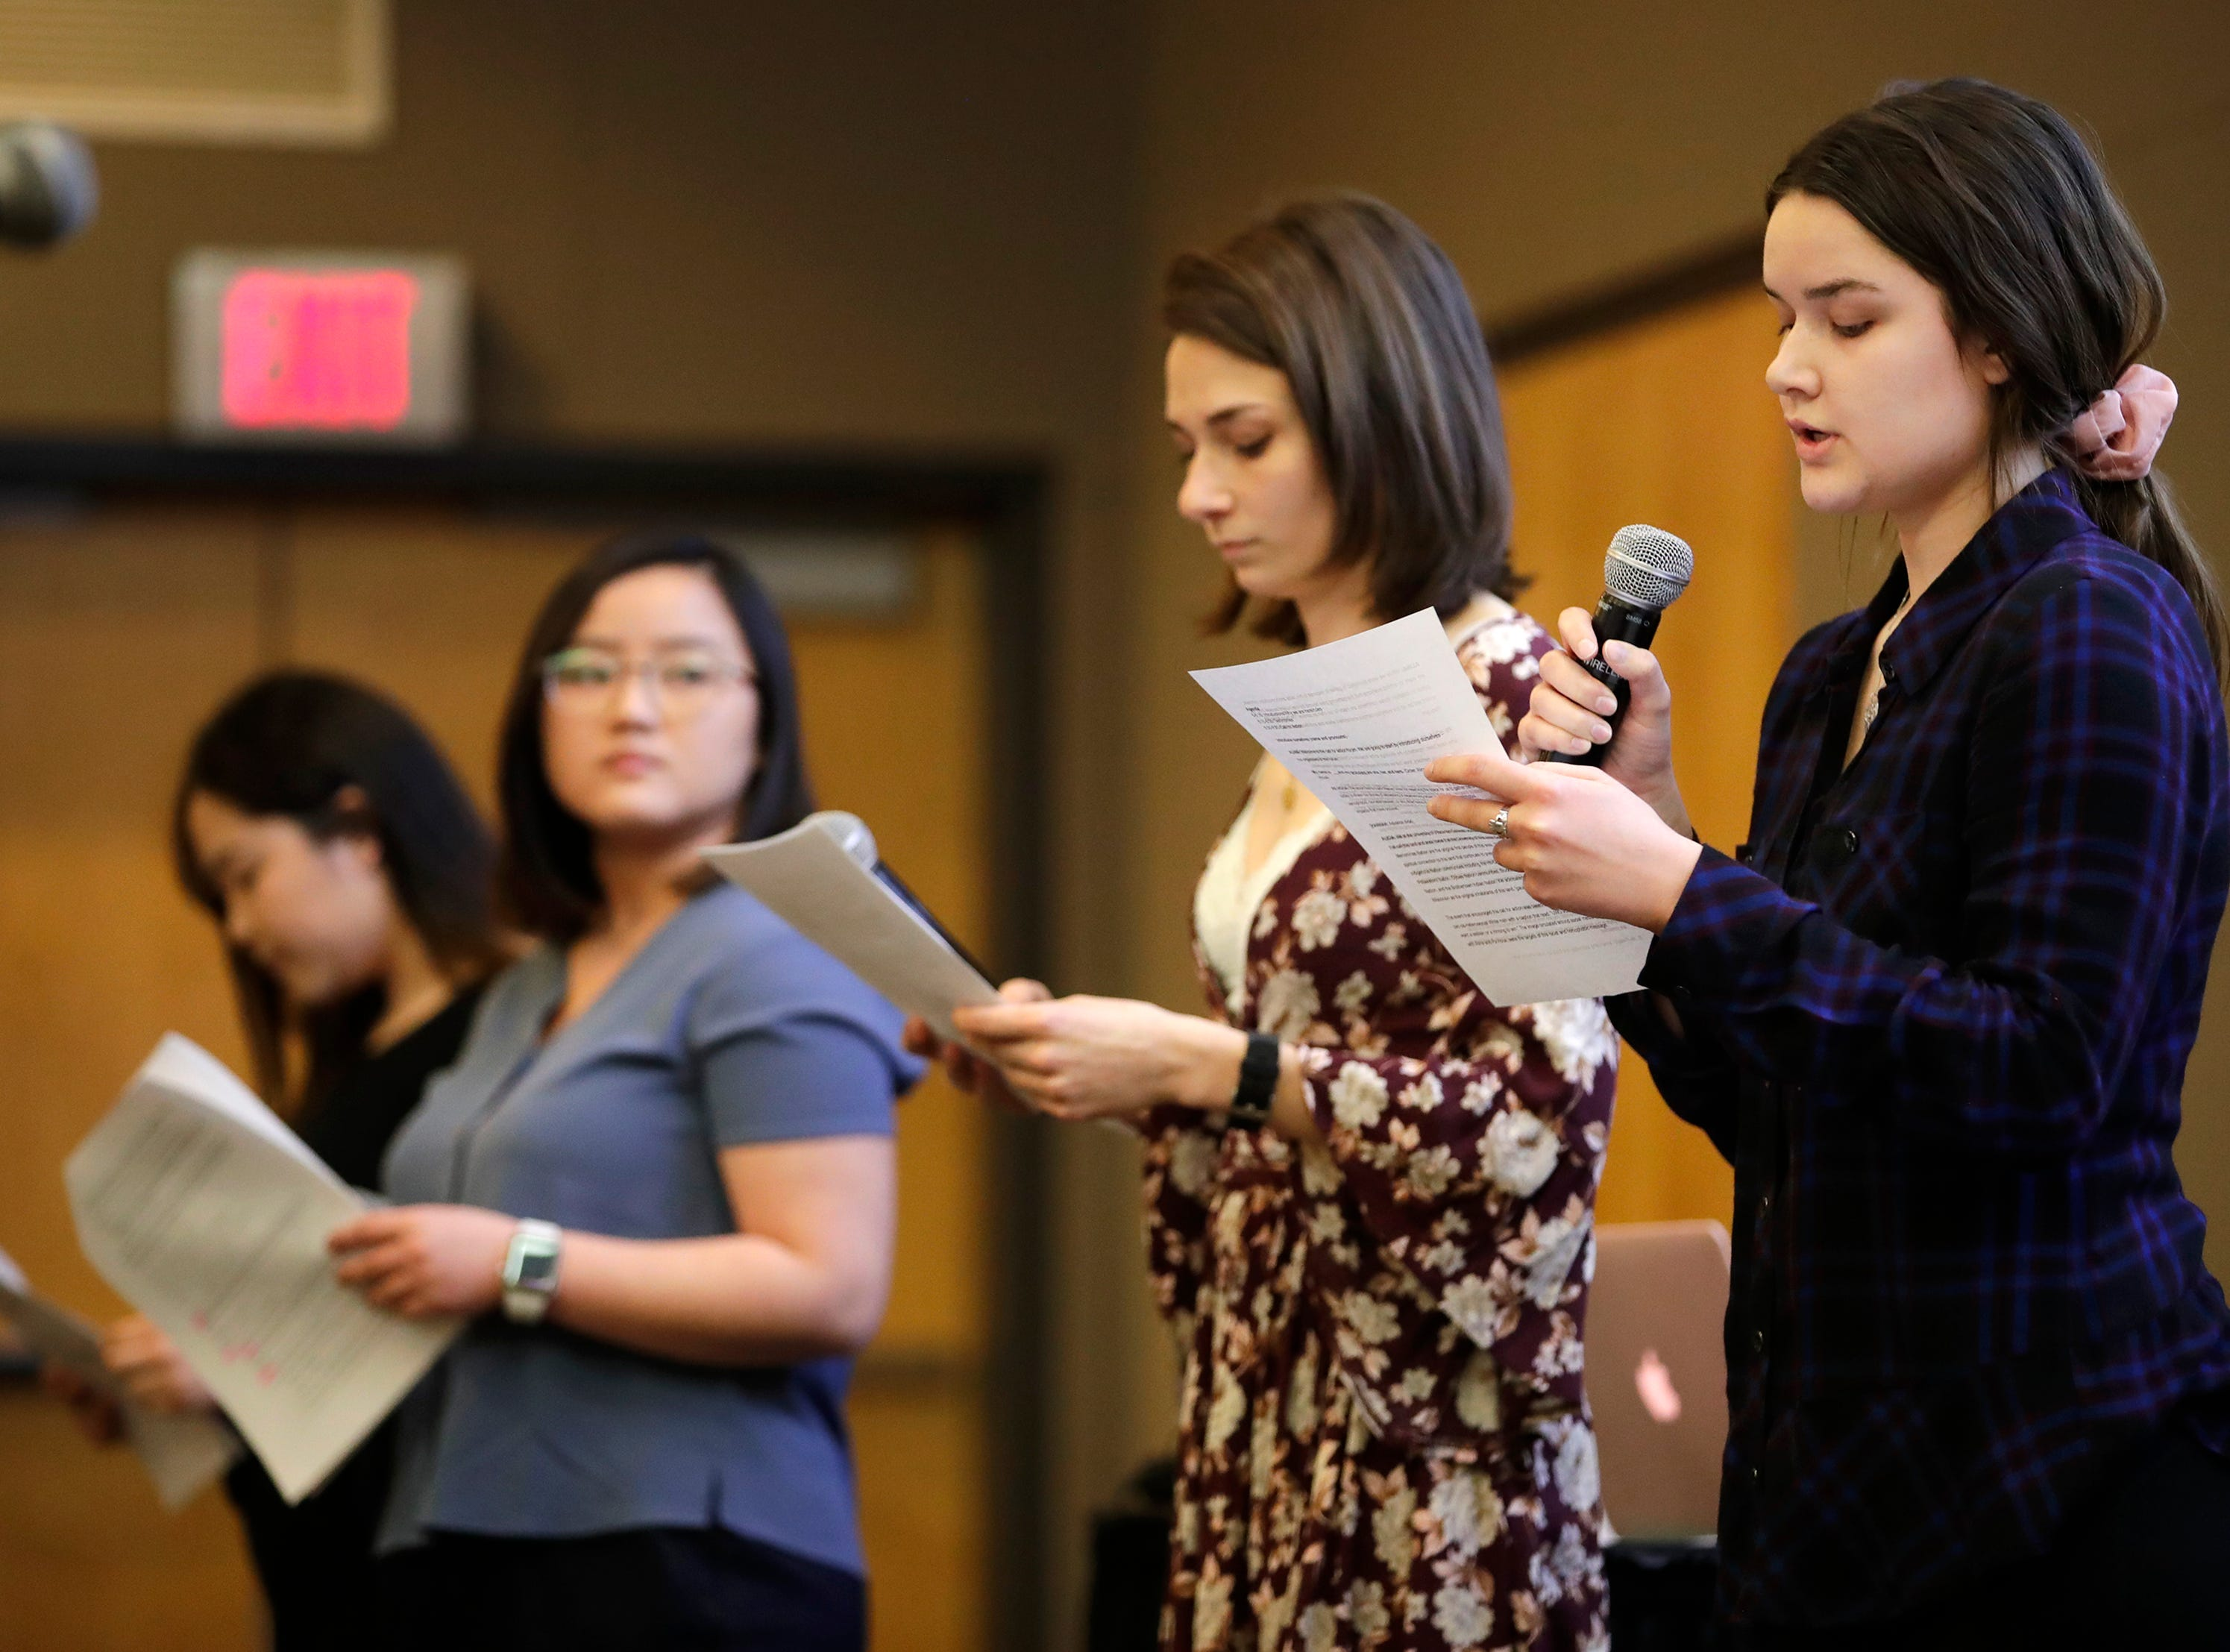 Call for Action Forum organizers from left Pa Houa Xiong, Alina Xiong, Alicia Obermeier, and Hannah Johnson introduce themselves to the crowd during the forum in the Reeve Union at the University of Wisconsin-Oshkosh Monday, March 18, 2019, in Oshkosh, Wis. Danny Damiani/USA TODAY NETWORK-Wisconsin